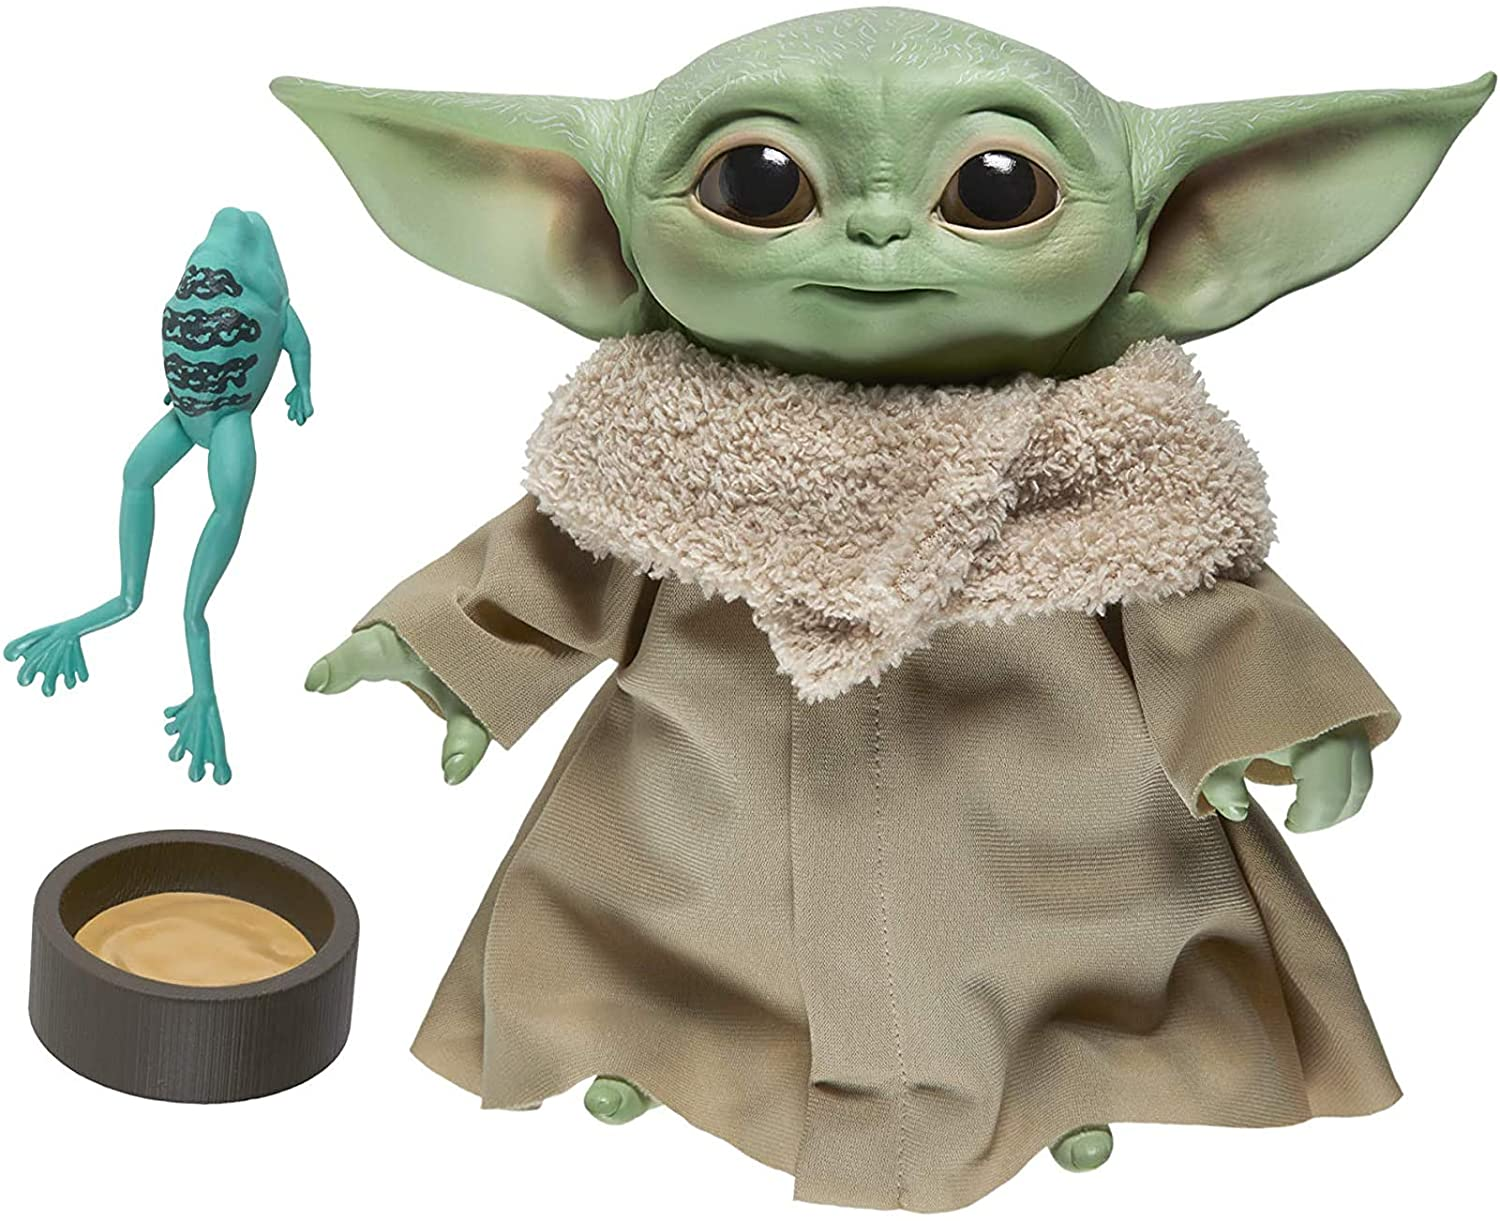 The Child Talking Plush Figure with Sounds and Accessories, the Mandalorian Toy, Baby Yoda 7.5Inch Tall